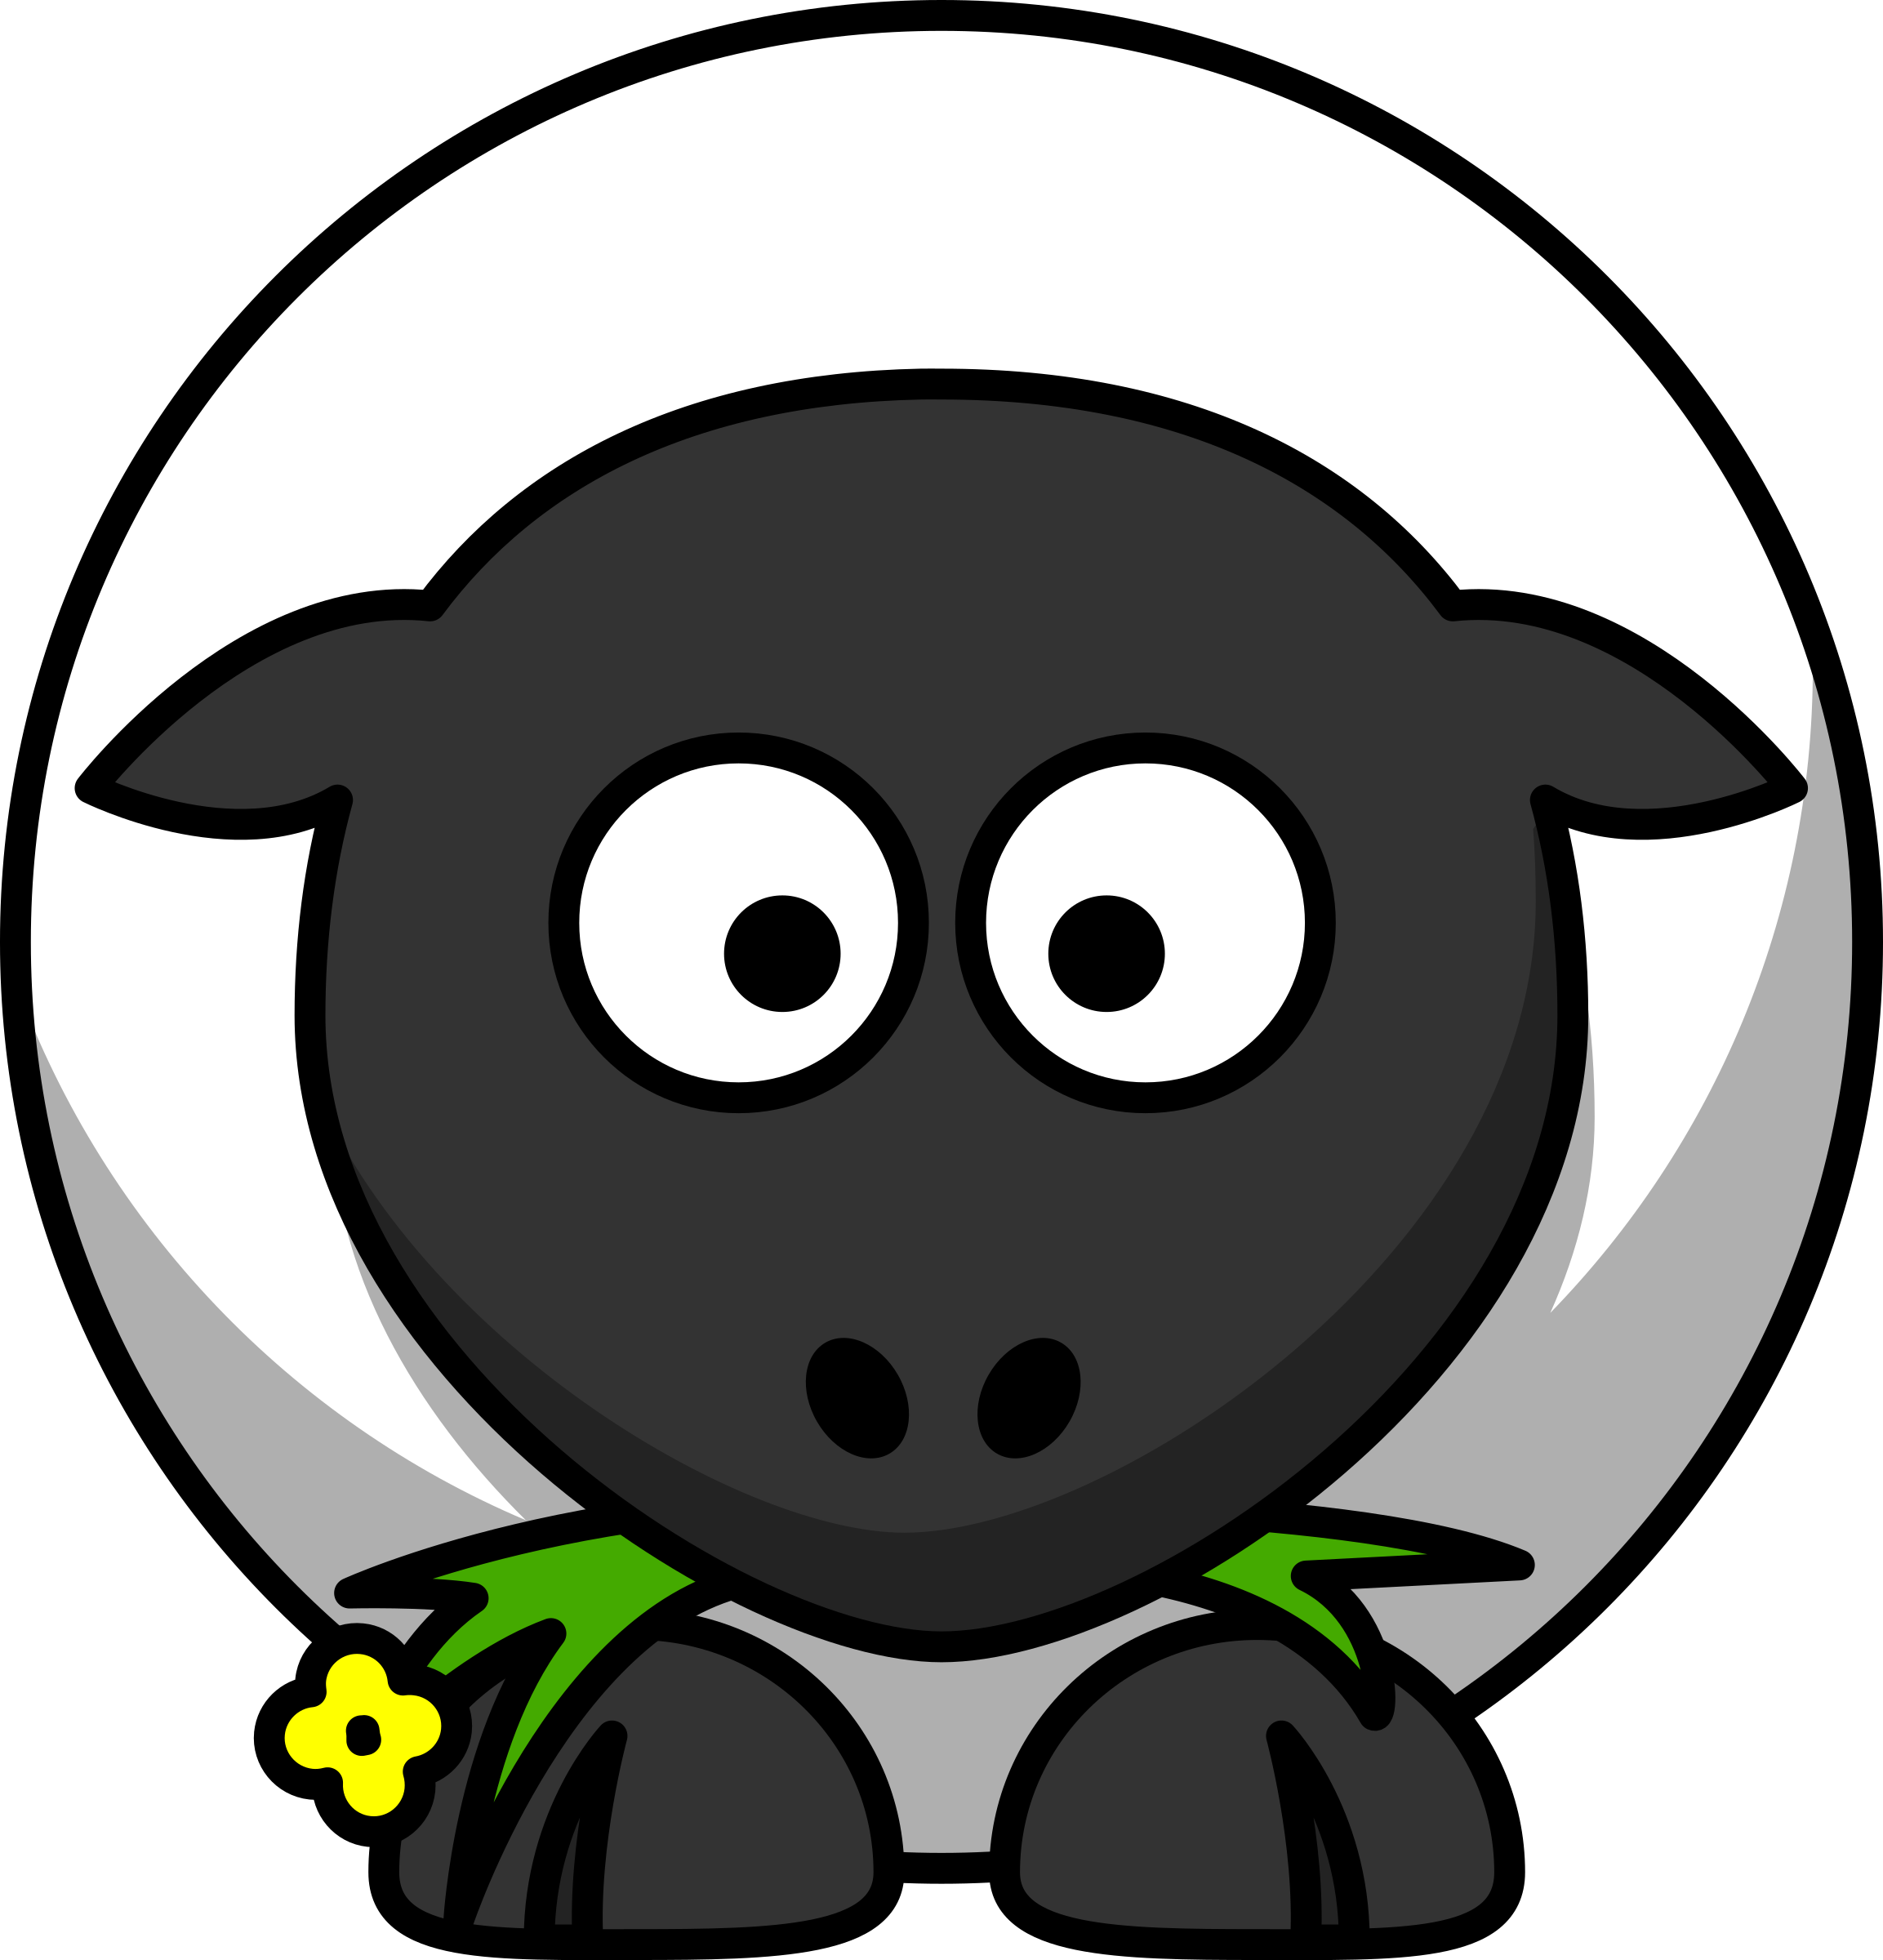 Circle clipart cartoon. Sheep big image png